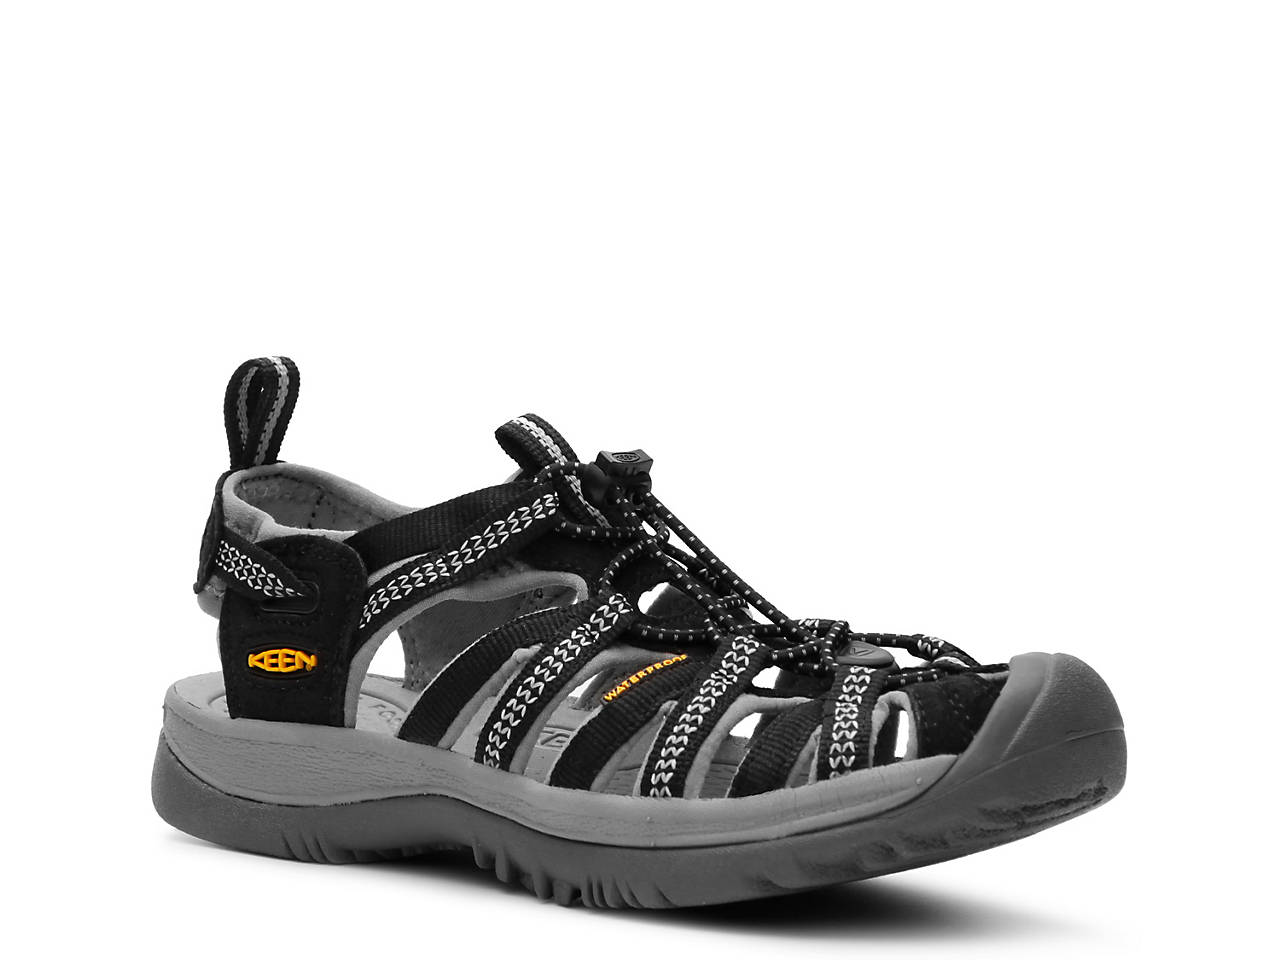 Keen Whisper Sport Sandal Women s Shoes   DSW 7d7eaee5e582